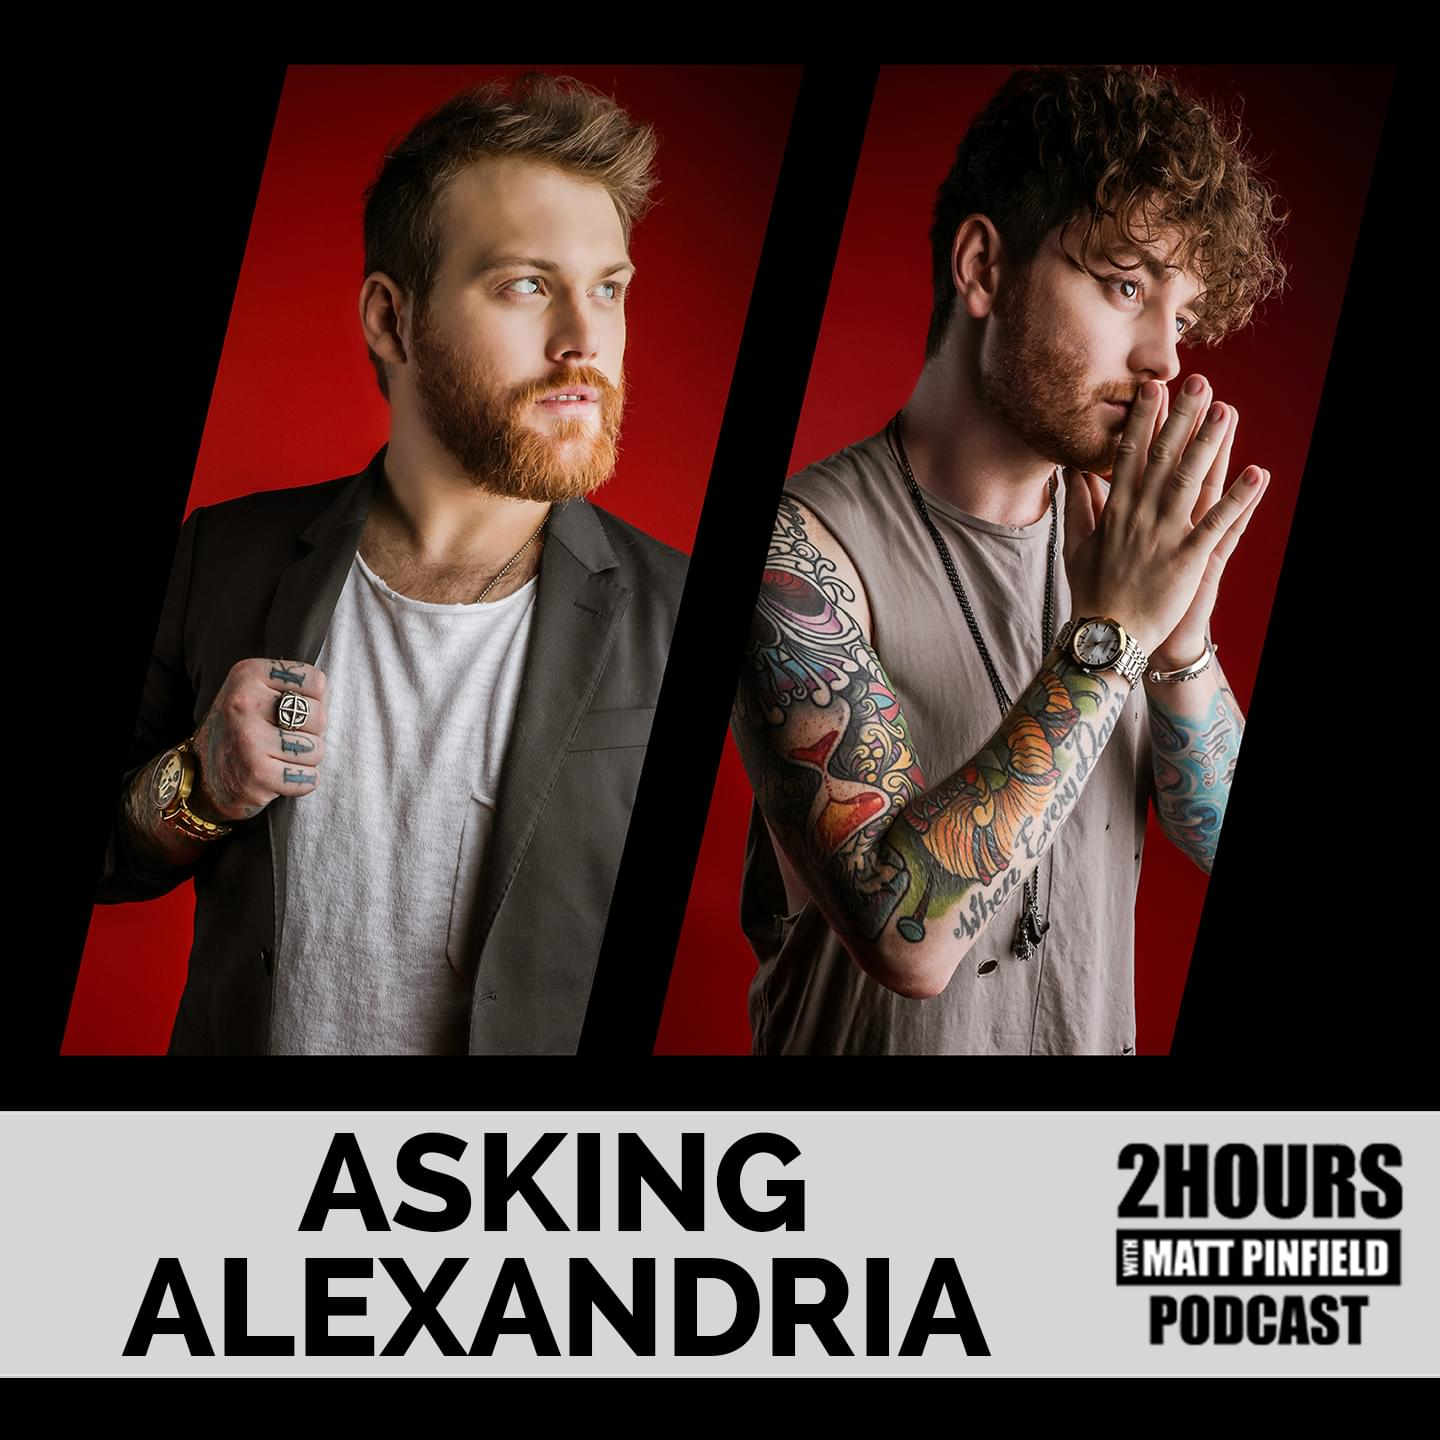 Podcast: Asking Alexandria